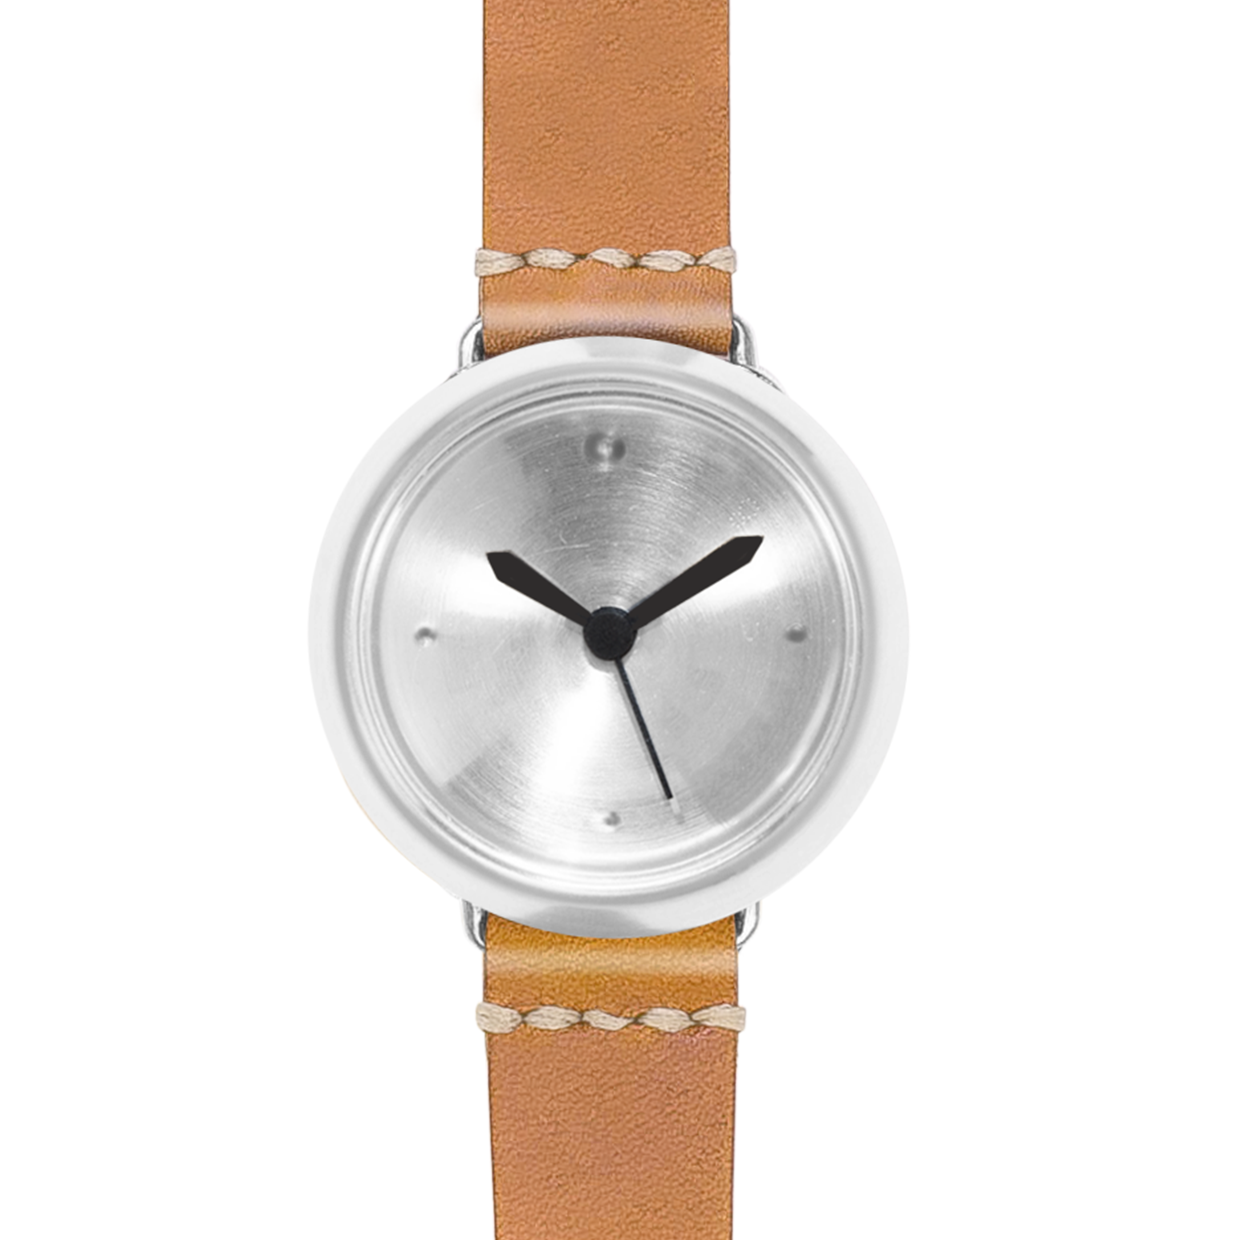 CAN_WATCH_S_brown